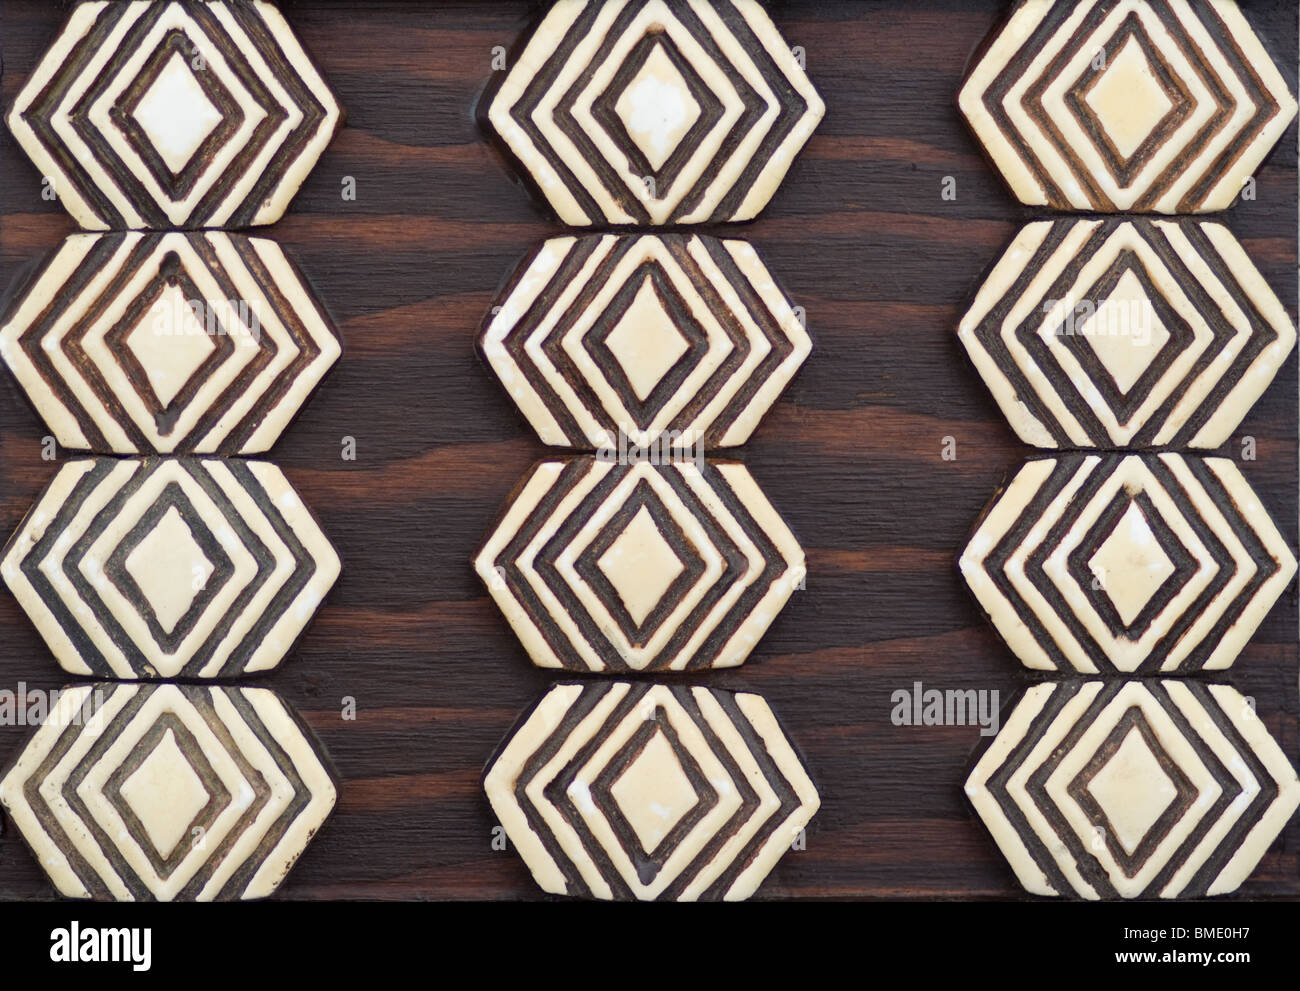 Tribal geometric primitive jungle brown wood and ivory color art trivet - Stock Image